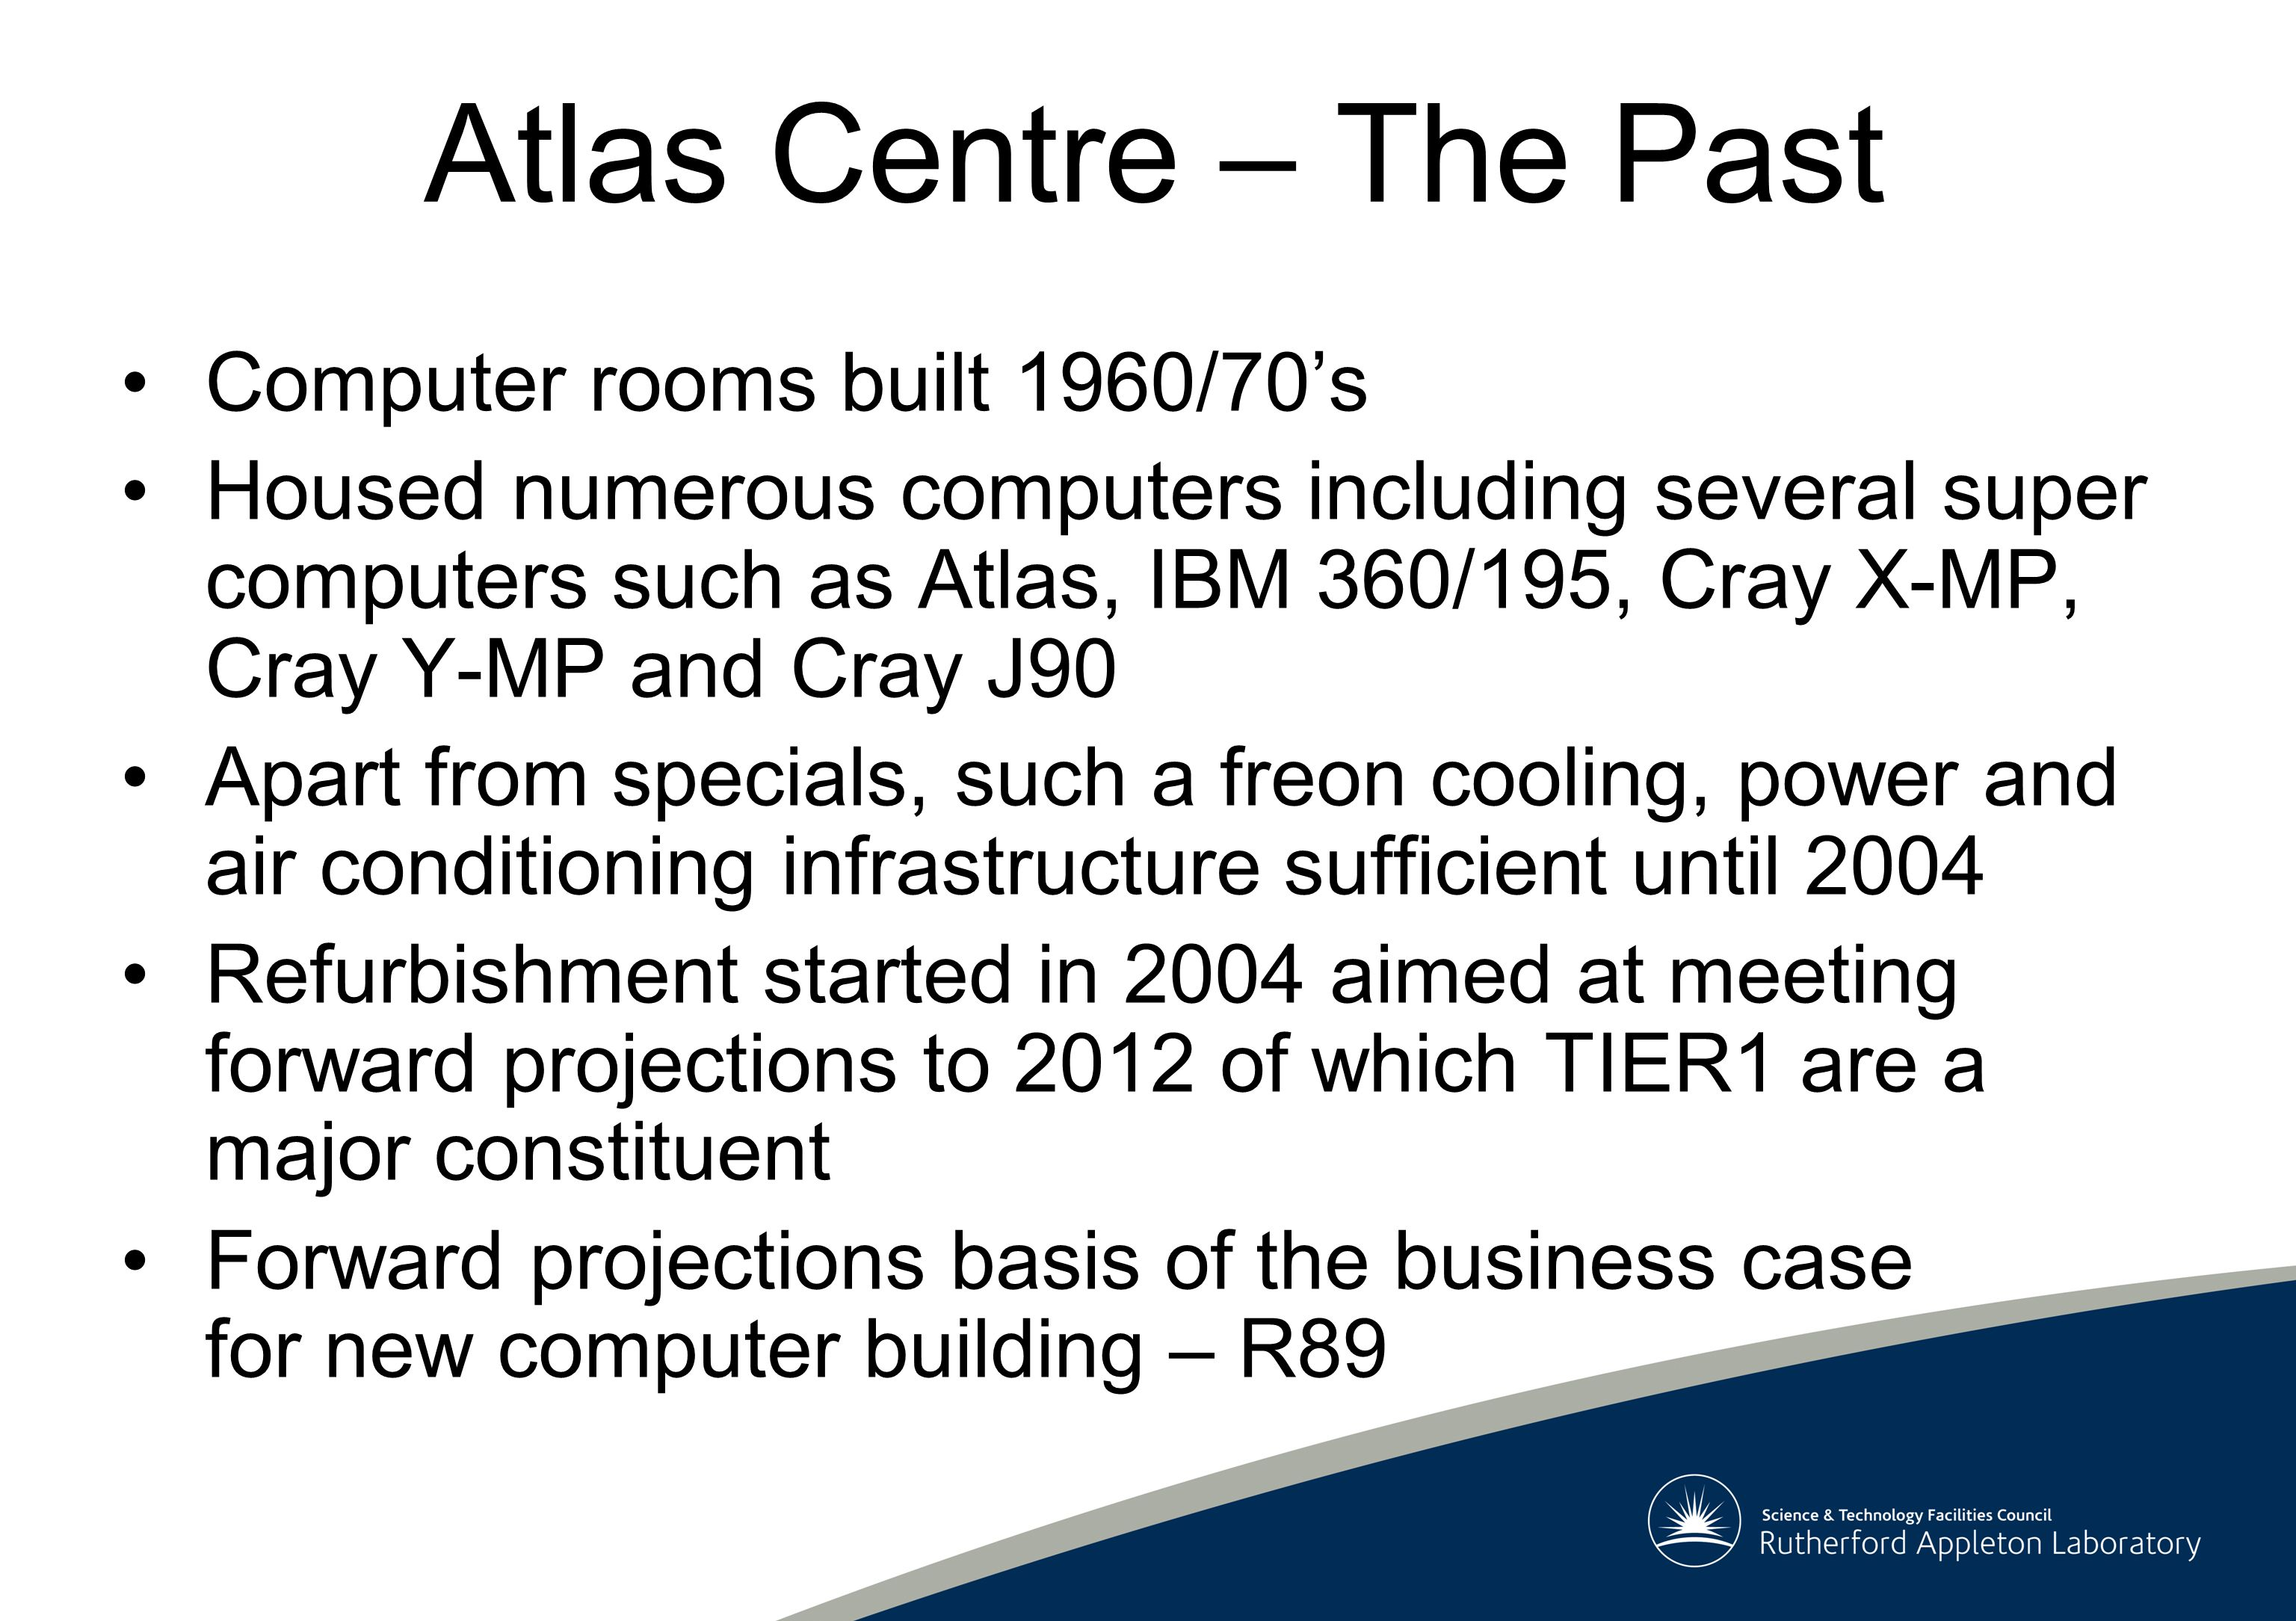 Atlas Centre – The Past Computer rooms built 1960/70's Housed numerous computers including several super computers such as Atlas, IBM 360/195, Cray X-MP, Cray Y-MP and Cray J90 Apart from specials, such a freon cooling, power and air conditioning infrastructure sufficient until 2004 Refurbishment started in 2004 aimed at meeting forward projections to 2012 of which TIER1 are a major constituent Forward projections basis of the business case for new computer building – R89